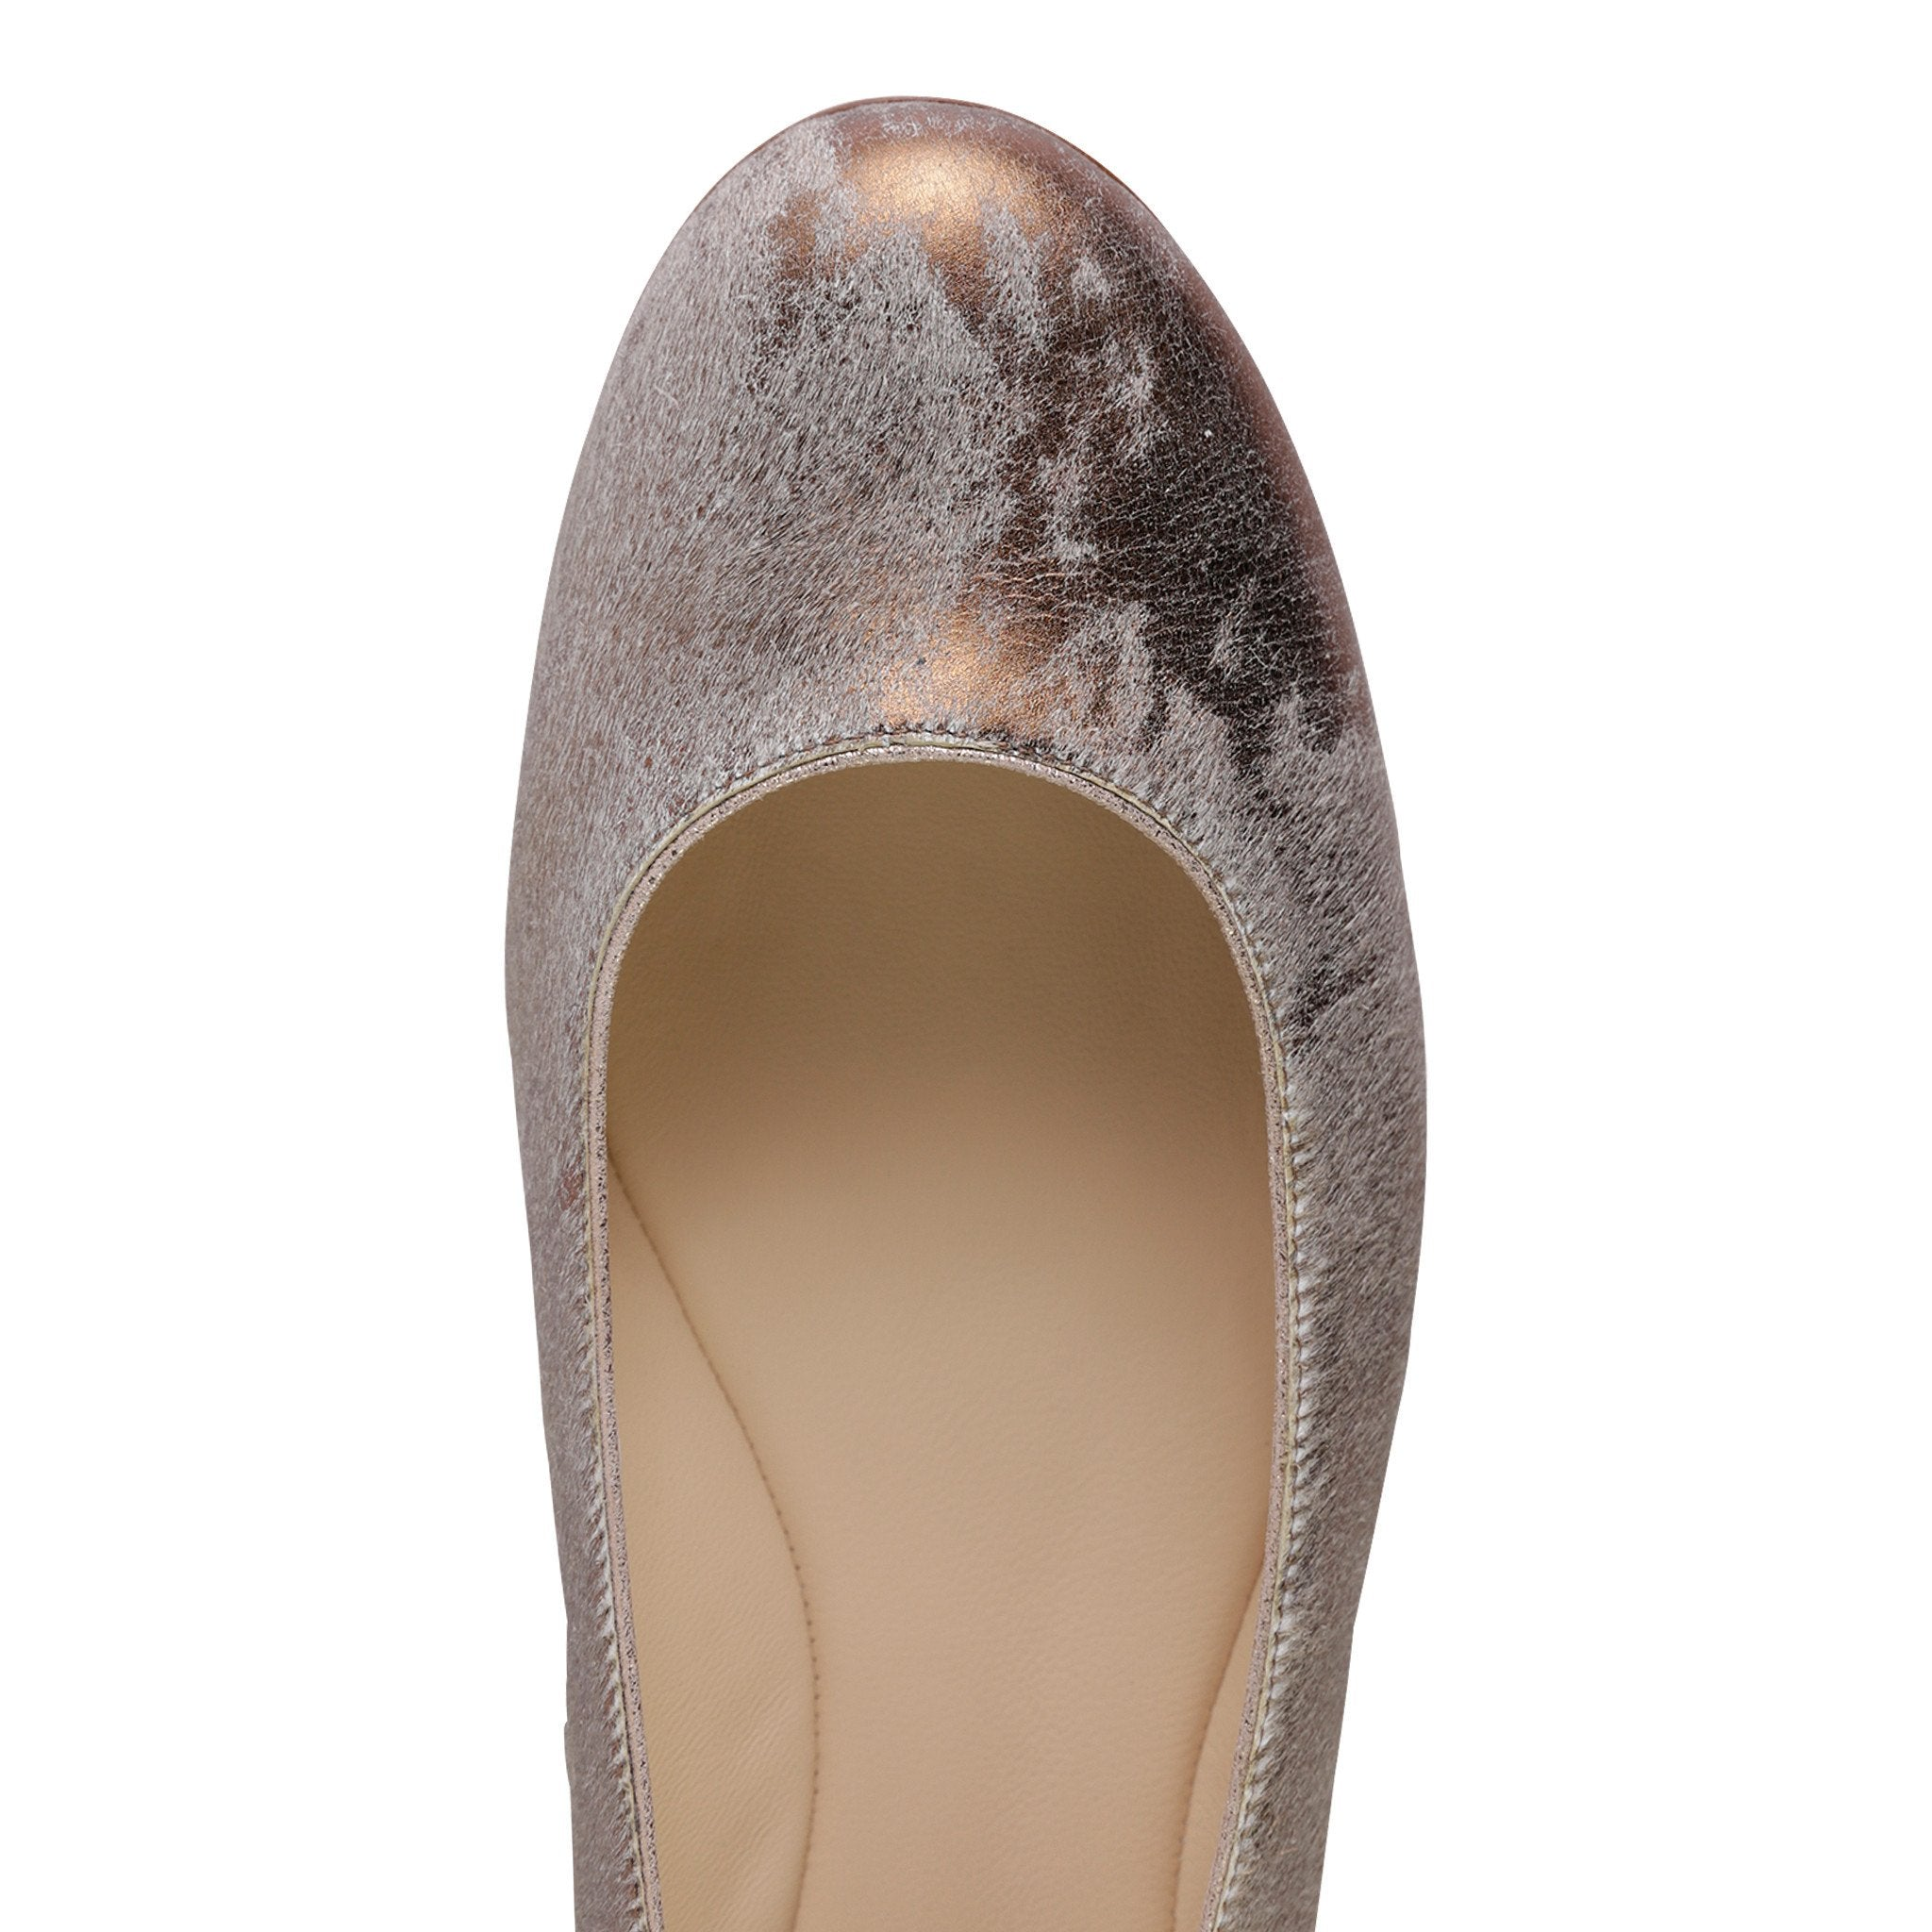 VENEZIA - Calf Hair Vintage Copper, VIAJIYU - Women's Hand Made Sustainable Luxury Shoes. Made in Italy. Made to Order.